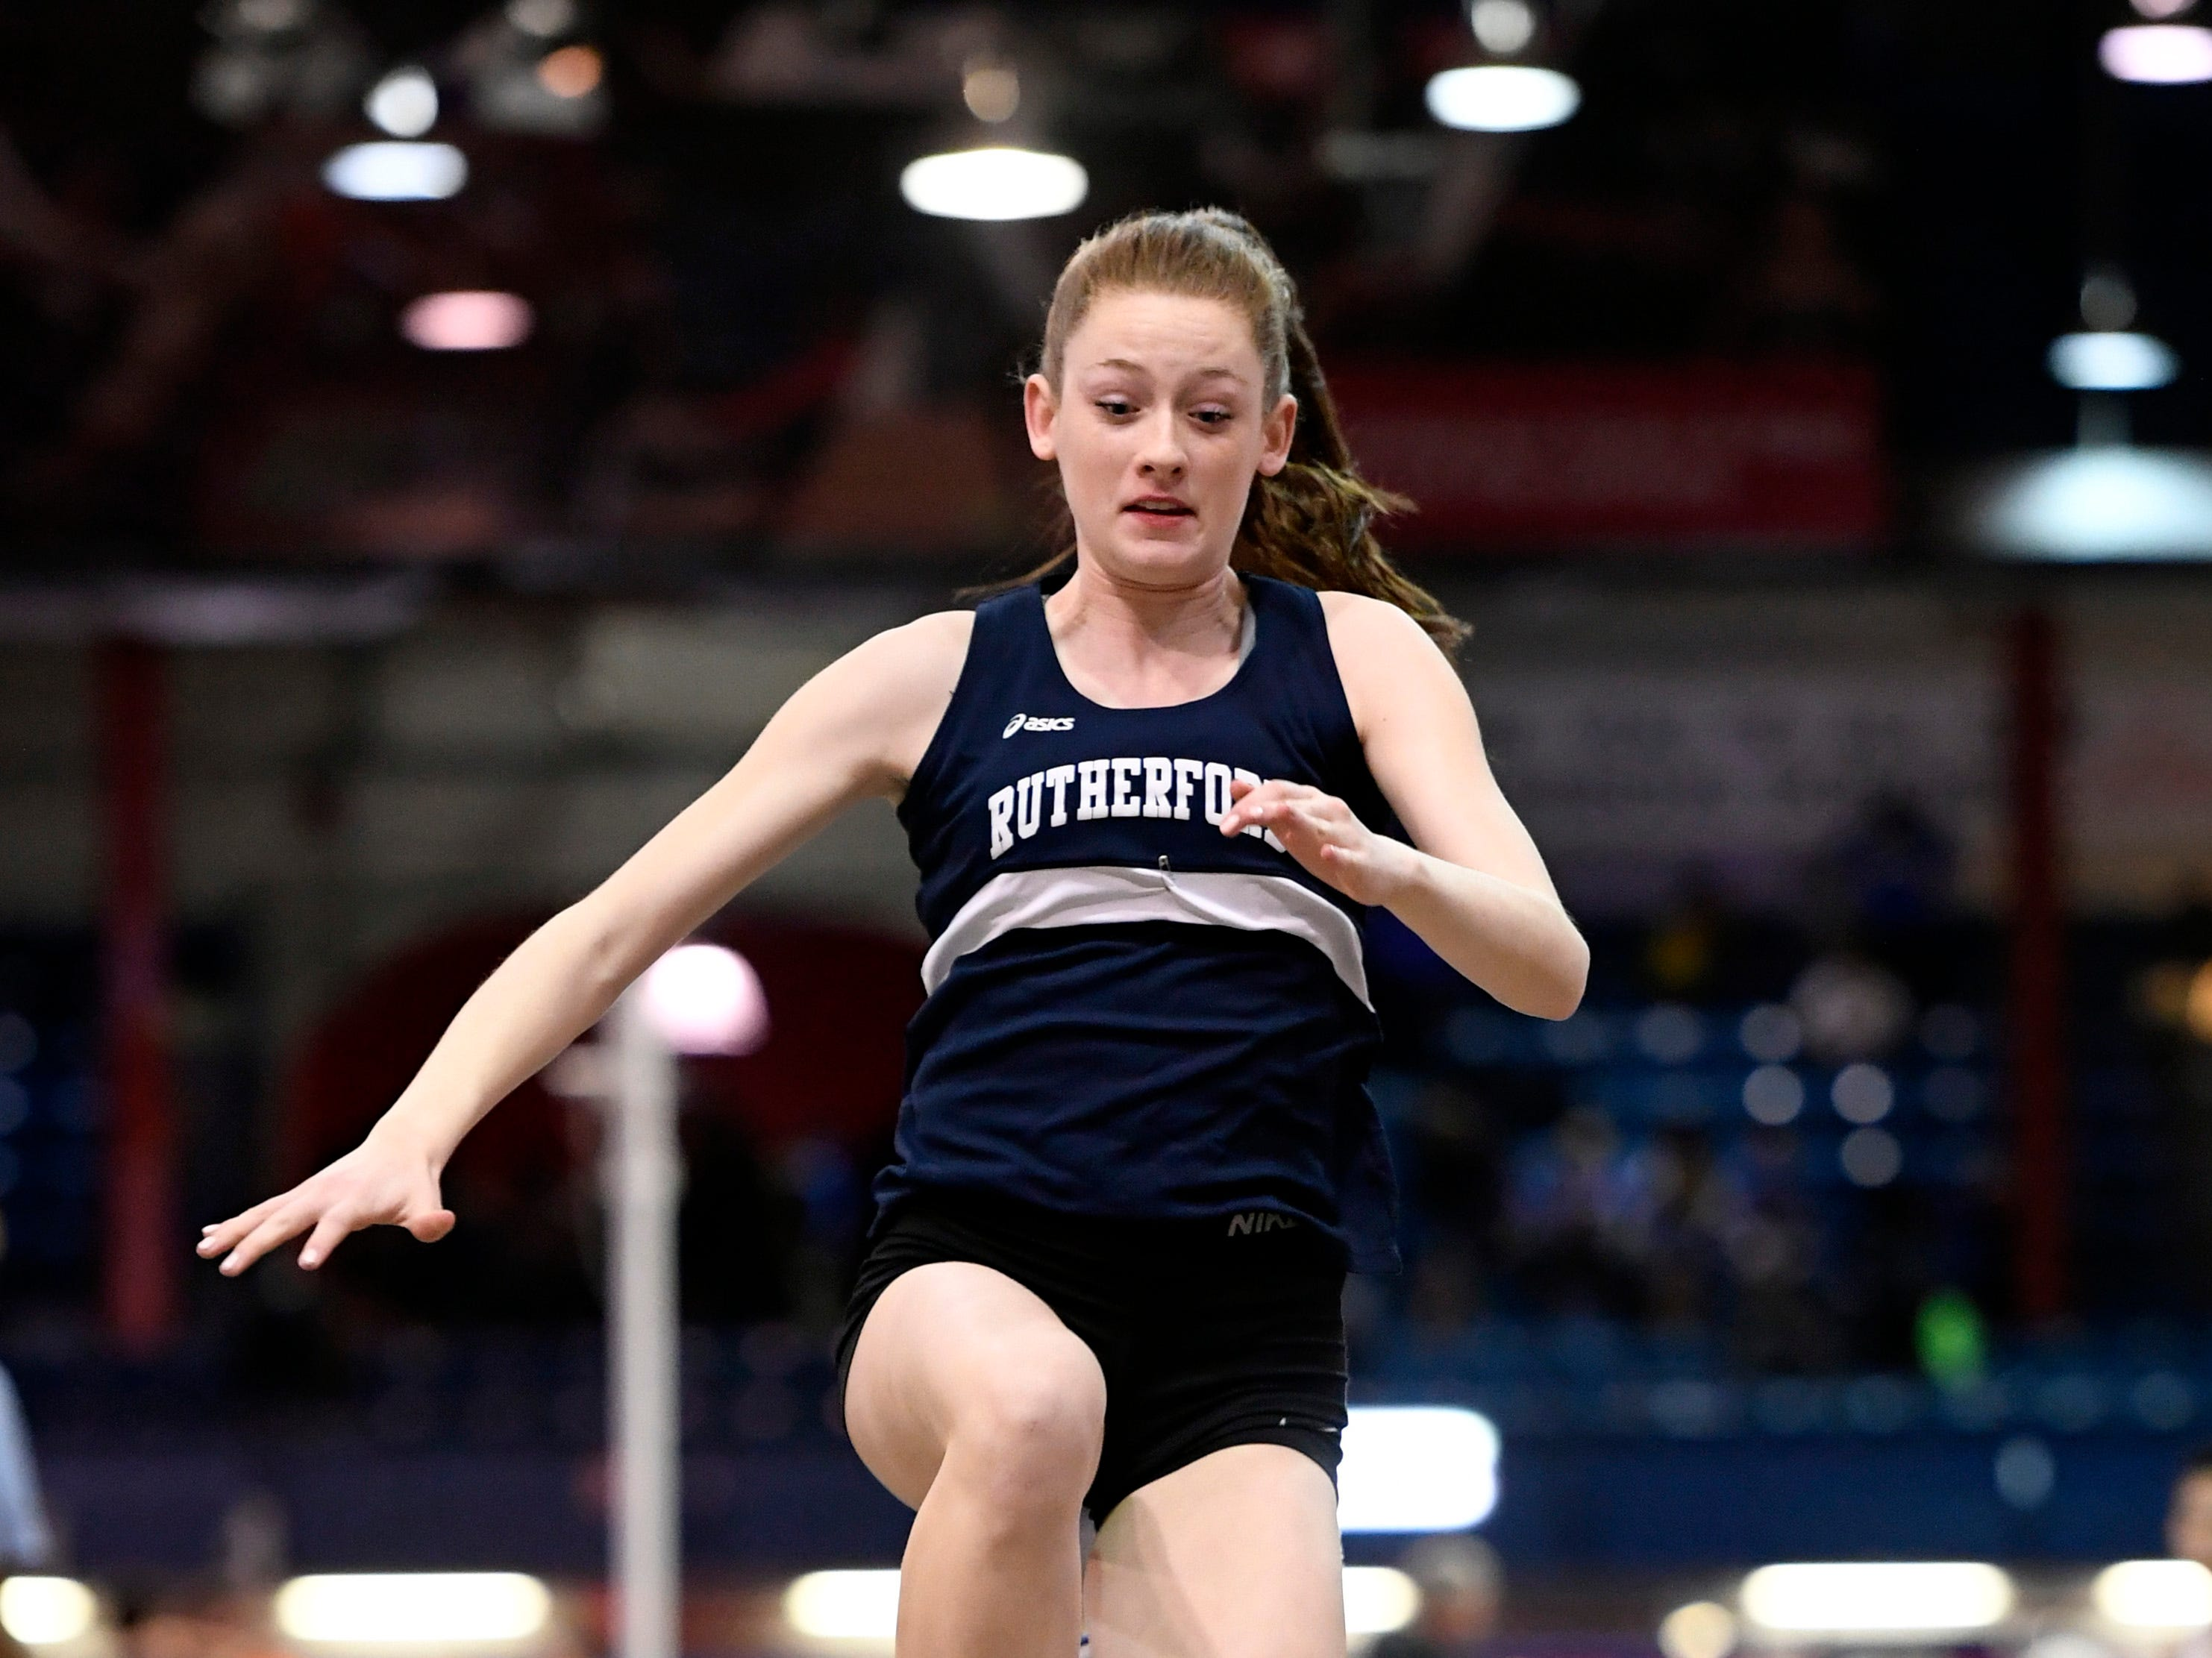 Rutherford's Jenna Rogers competes in the long jump during the NJIC track meet at the Armory Track on Monday, Jan. 7, 2019, in New York.